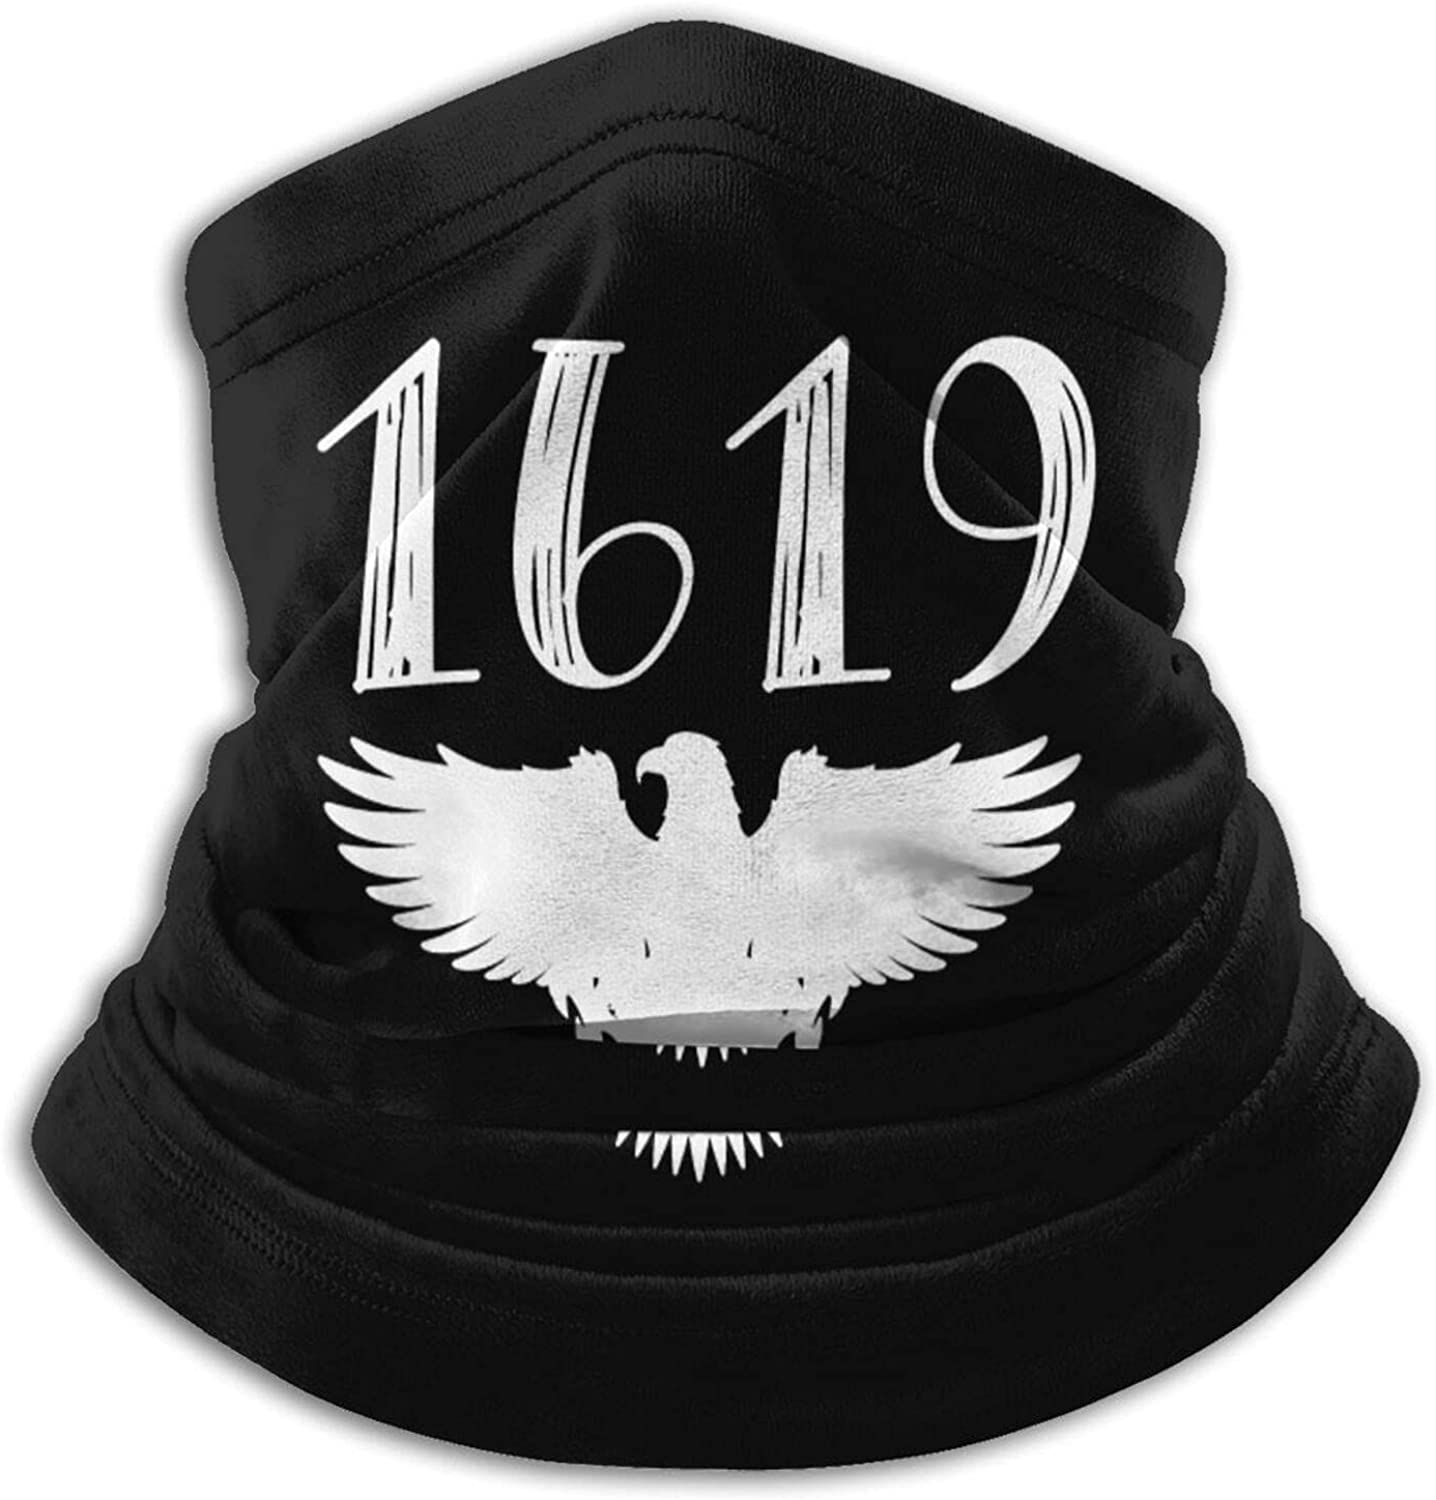 1619 our ancestors african american black unisex winter neck gaiter face cover mask, windproof balaclava scarf for fishing, running & hiking